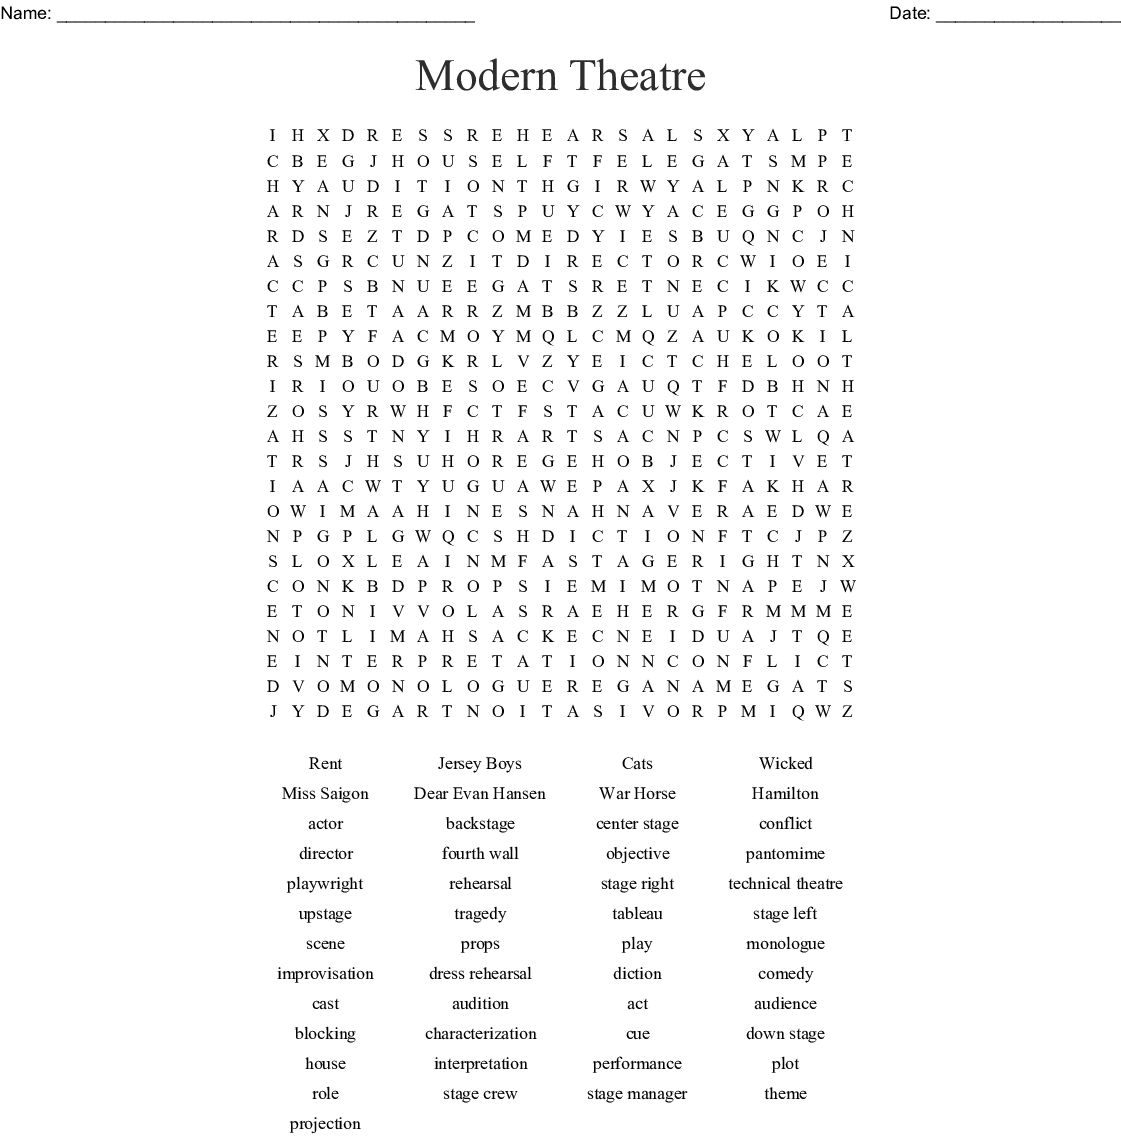 Drama Terms Word Search - Wordmint